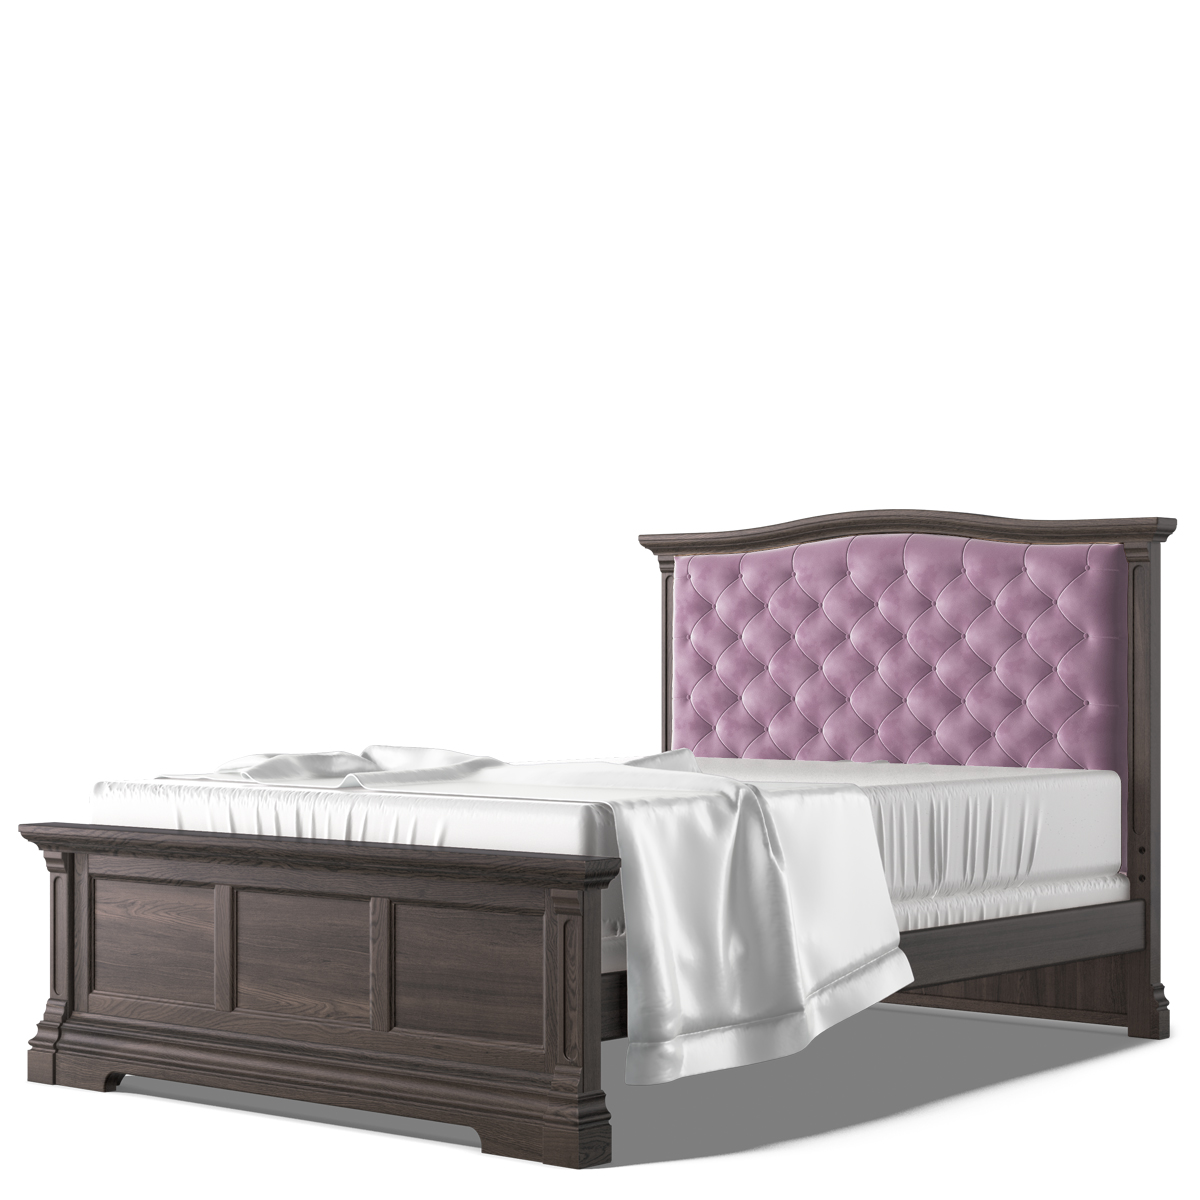 Romina Imperio Full Bed with Pink Velvet Tufted Headboard